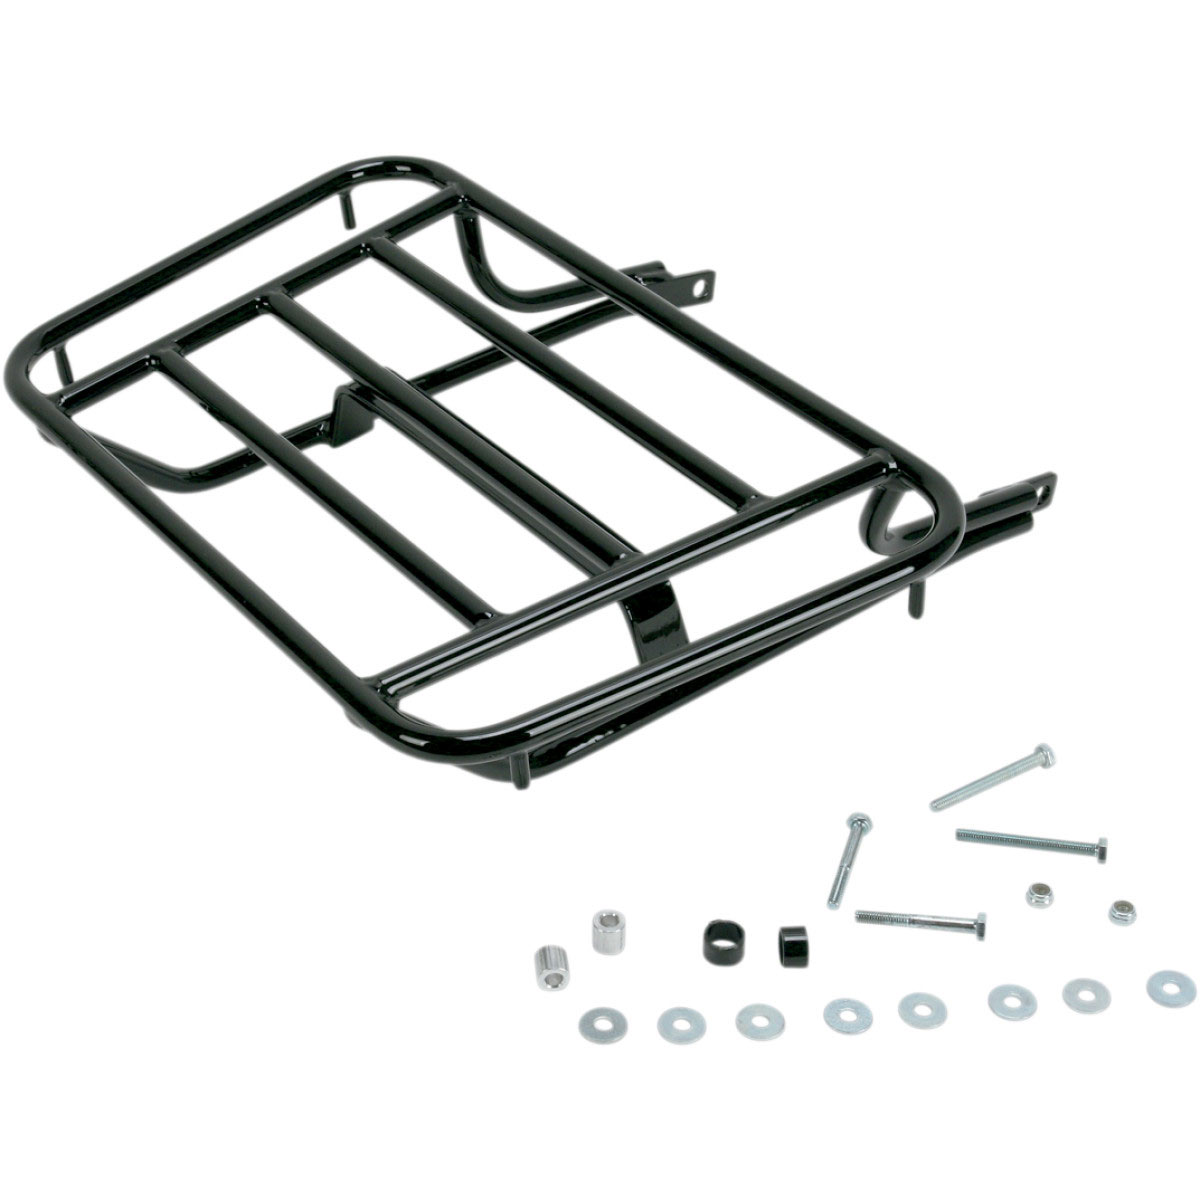 Moose Expedition Rear Rack For Klx250s 09 15